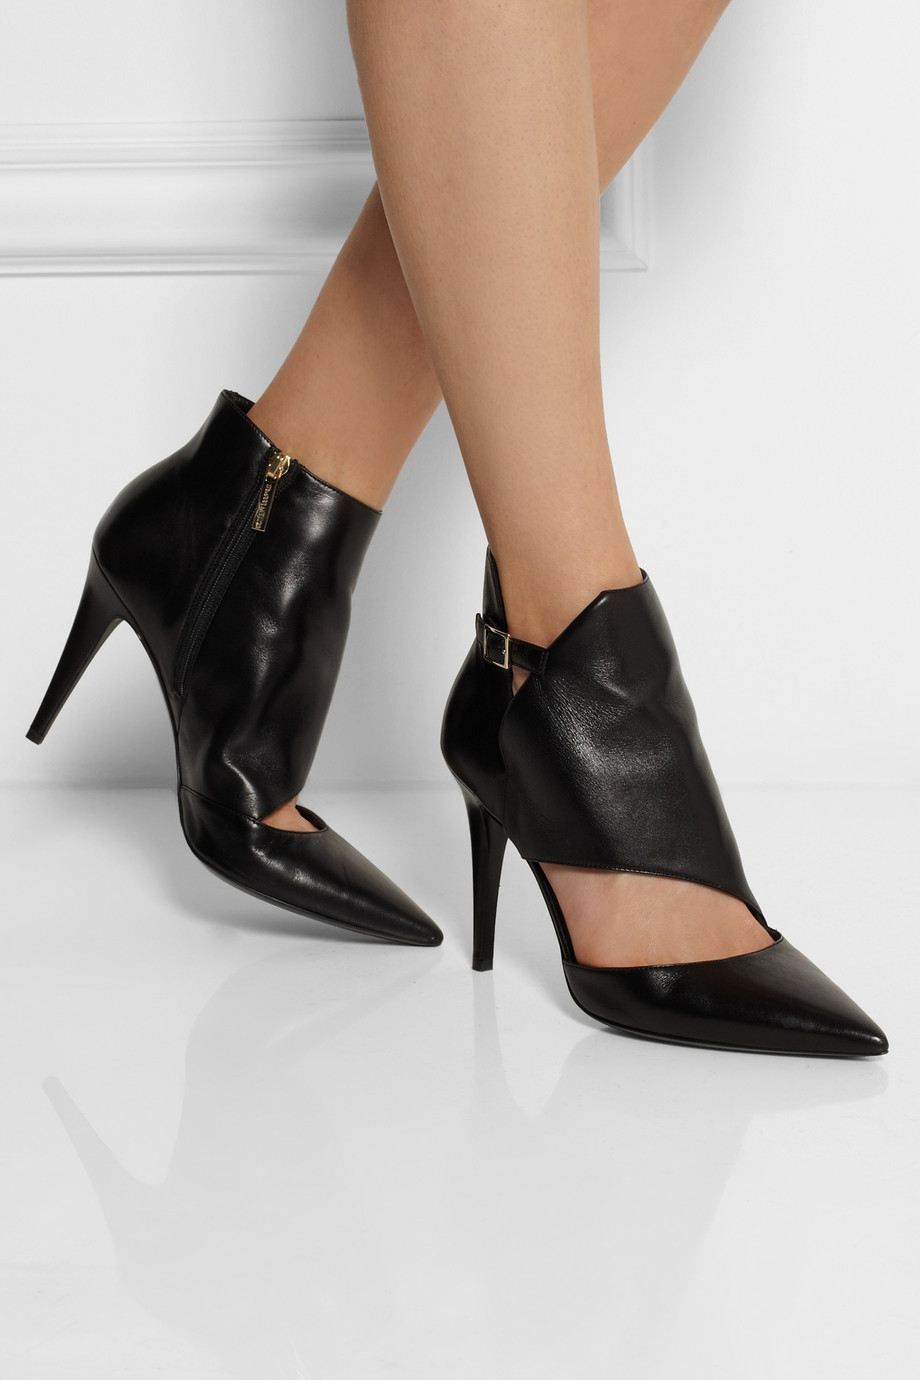 Tamara Mellon Madness Cutout Leather Ankle Boots In Black  Lyst-7027